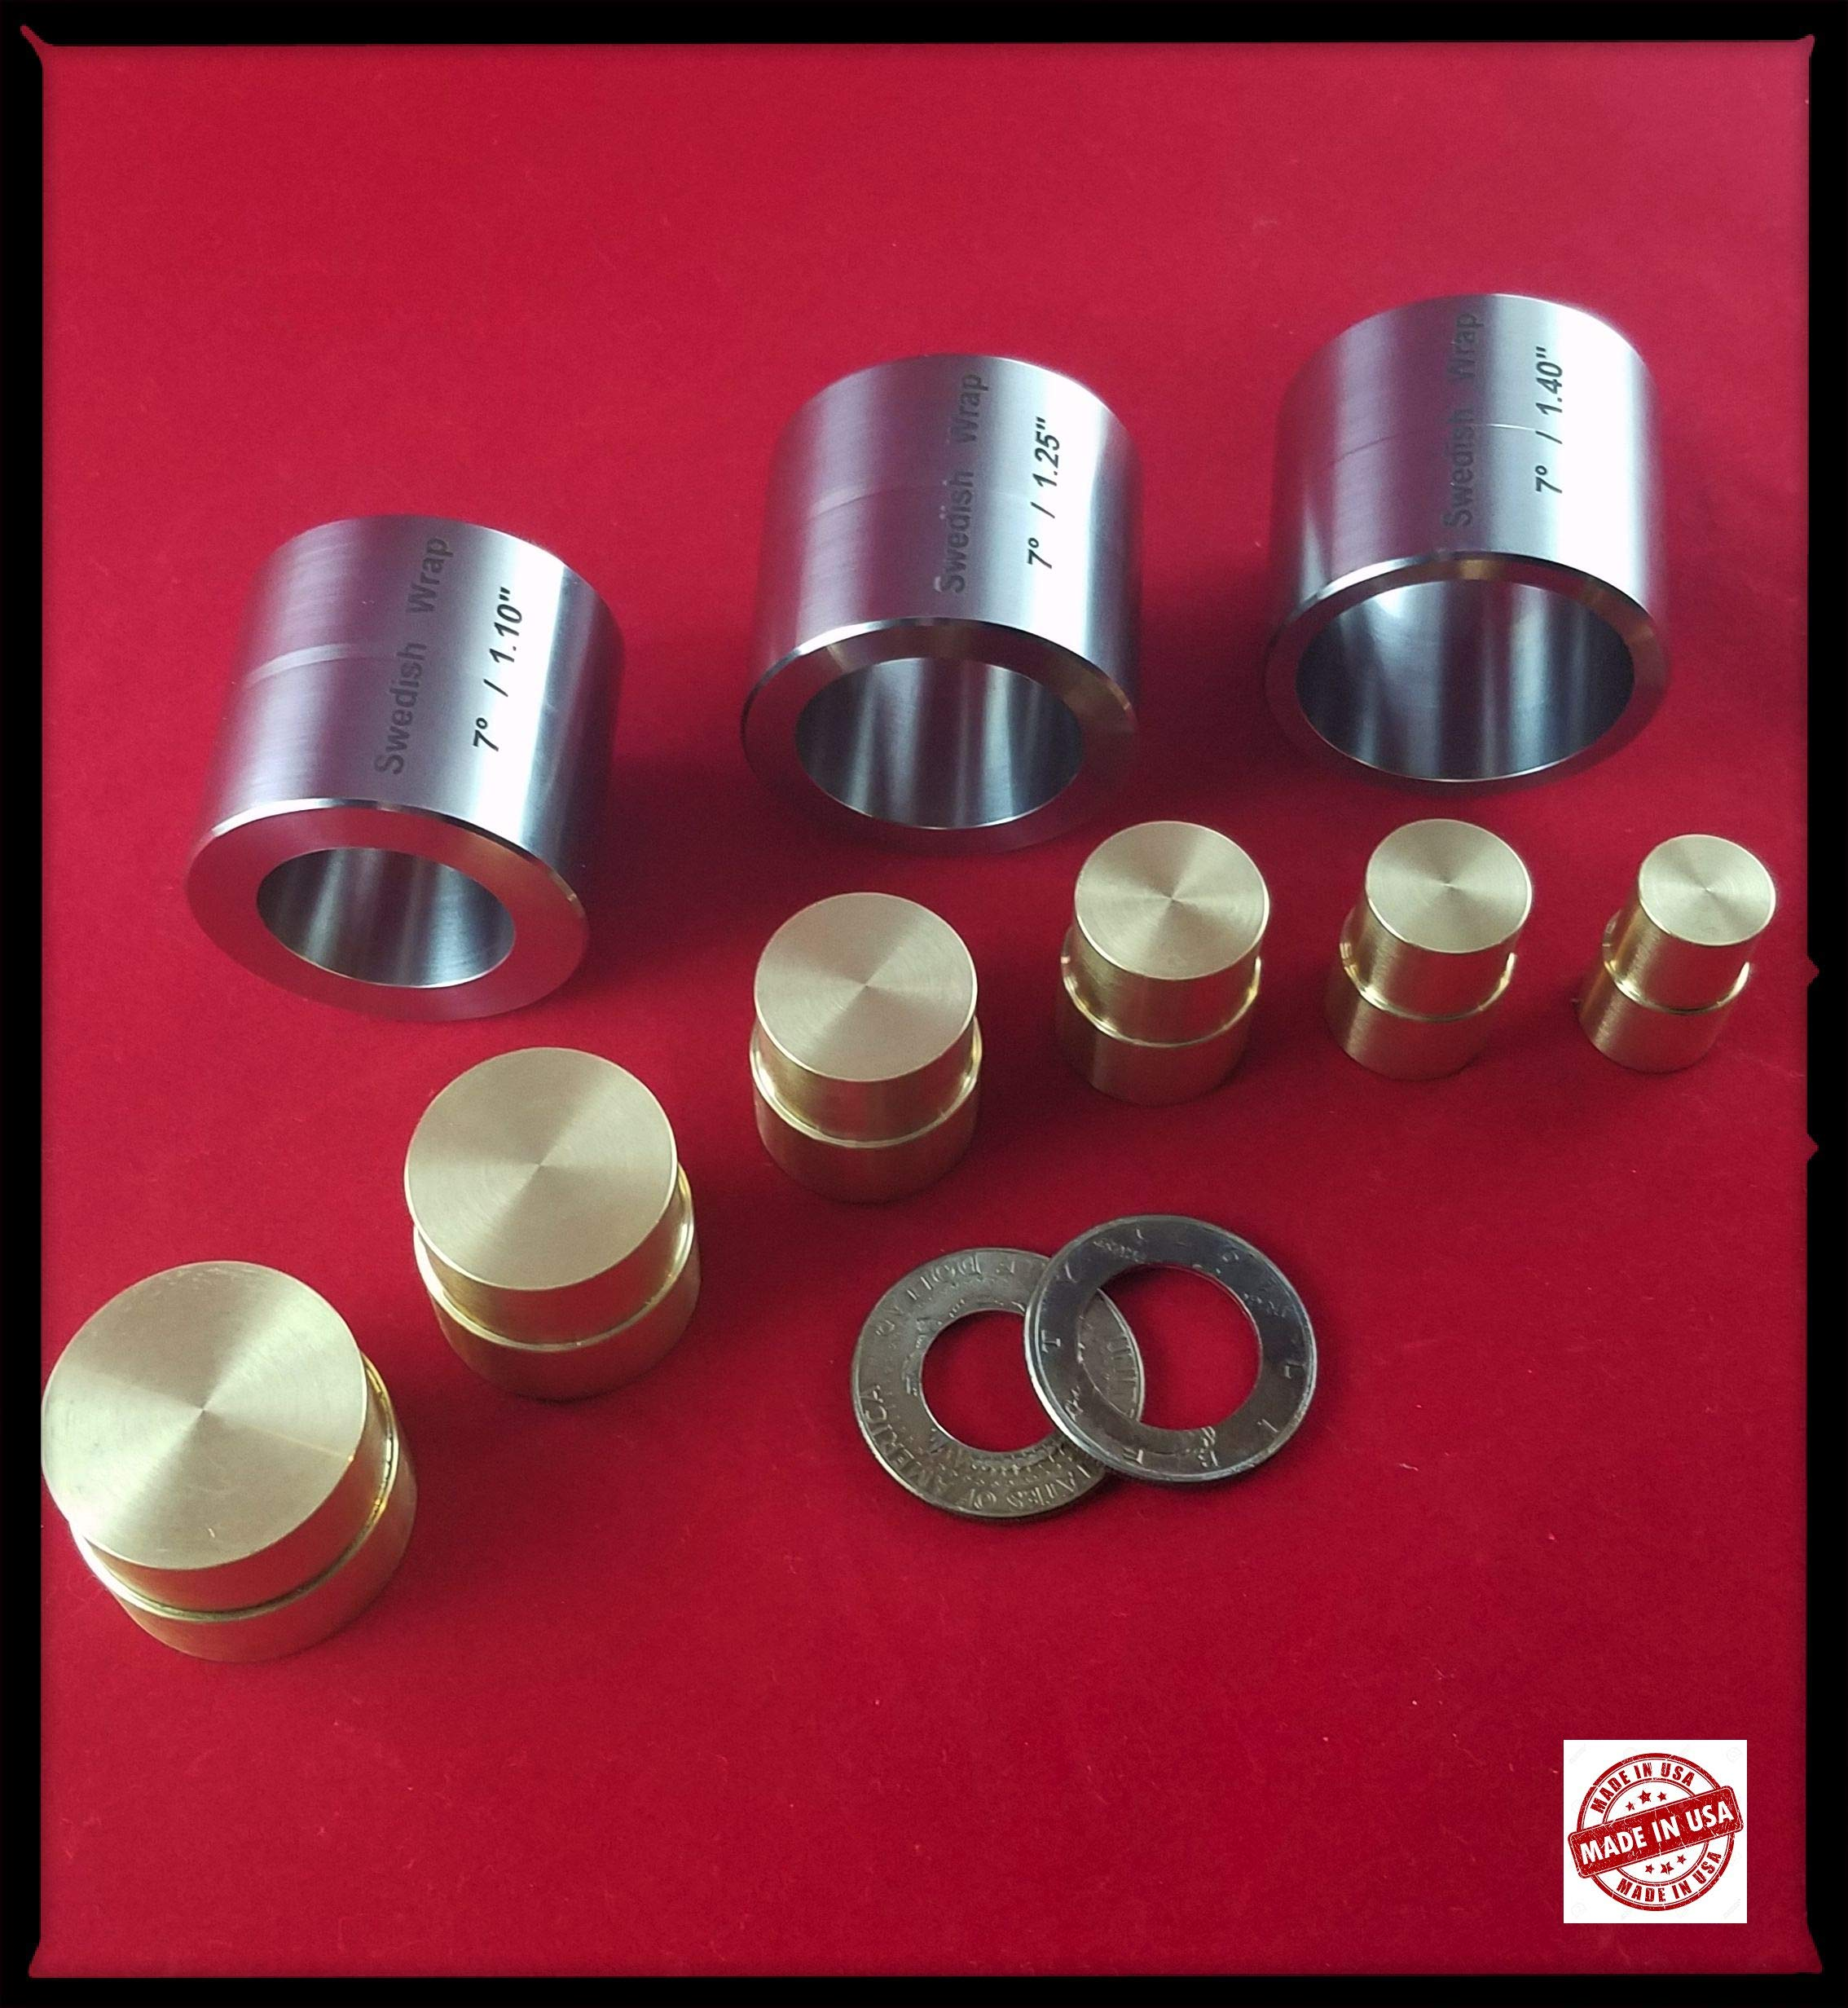 Swedish Wrap Die Set (3 pcs.) with Brass Plungers (6 Push Rods)